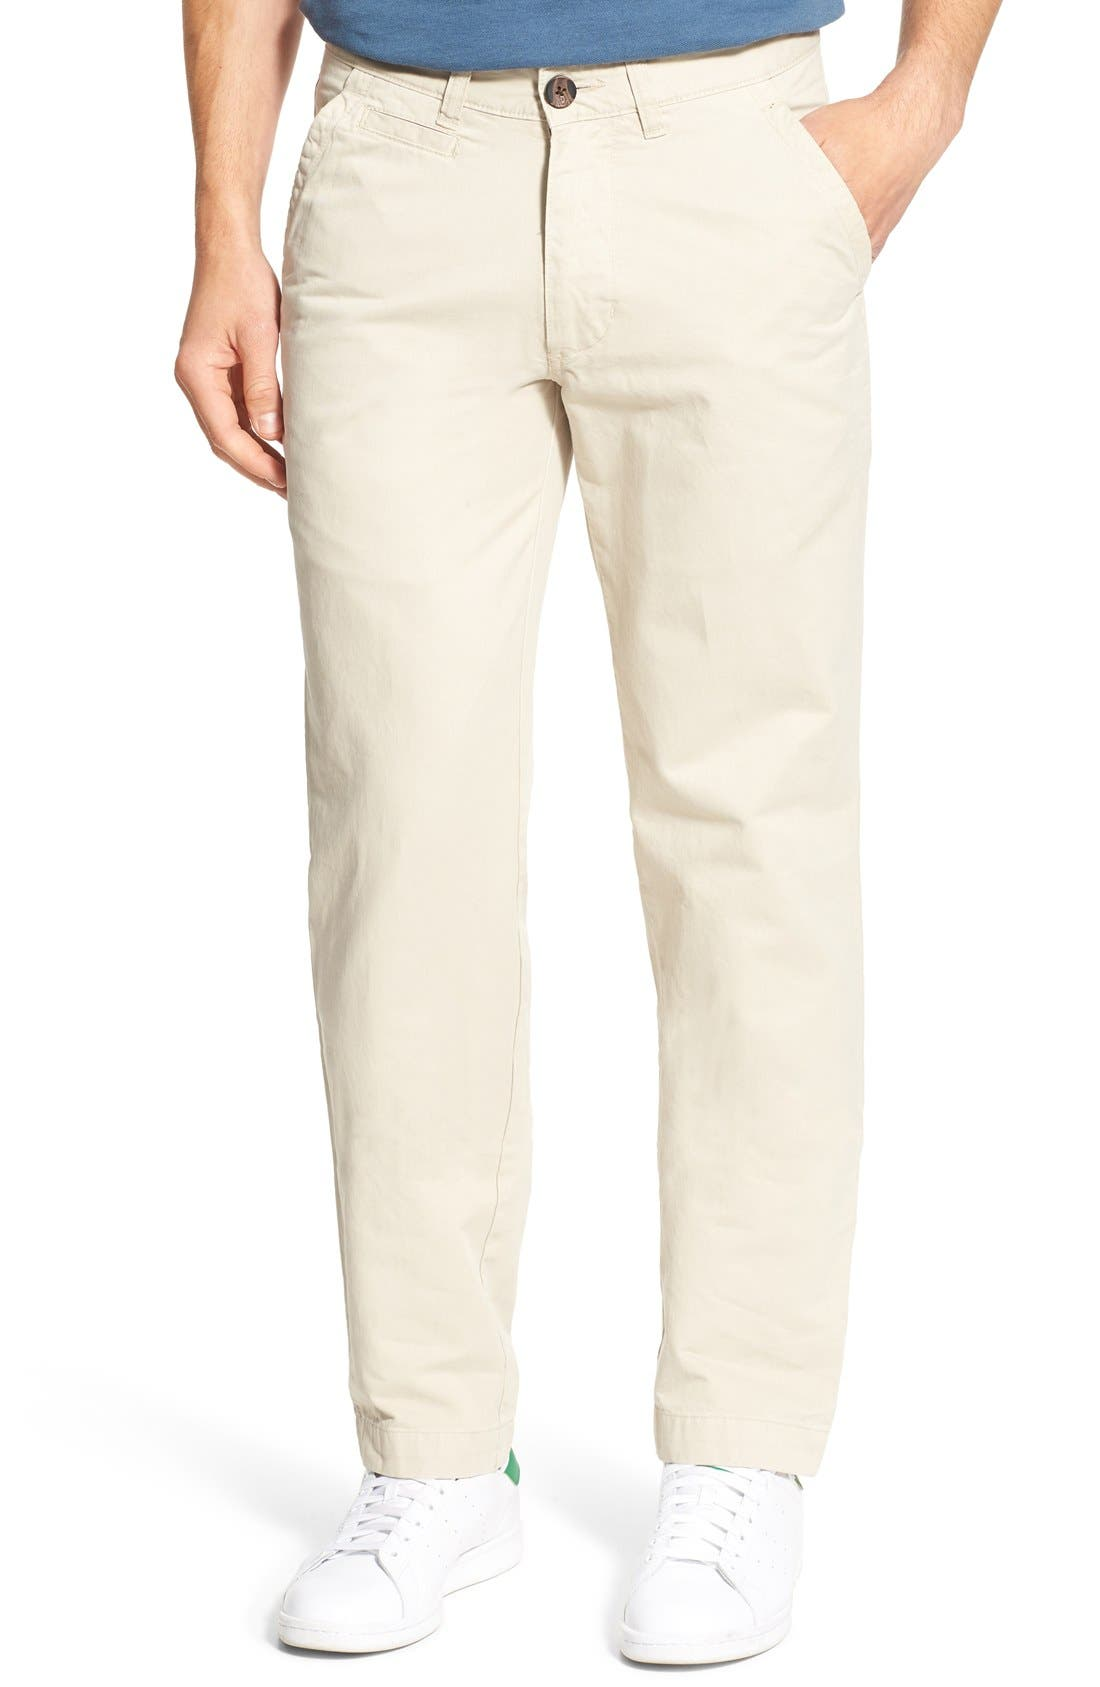 'Sahara' Trim Fit Vintage Washed Twill Chinos,                         Main,                         color,